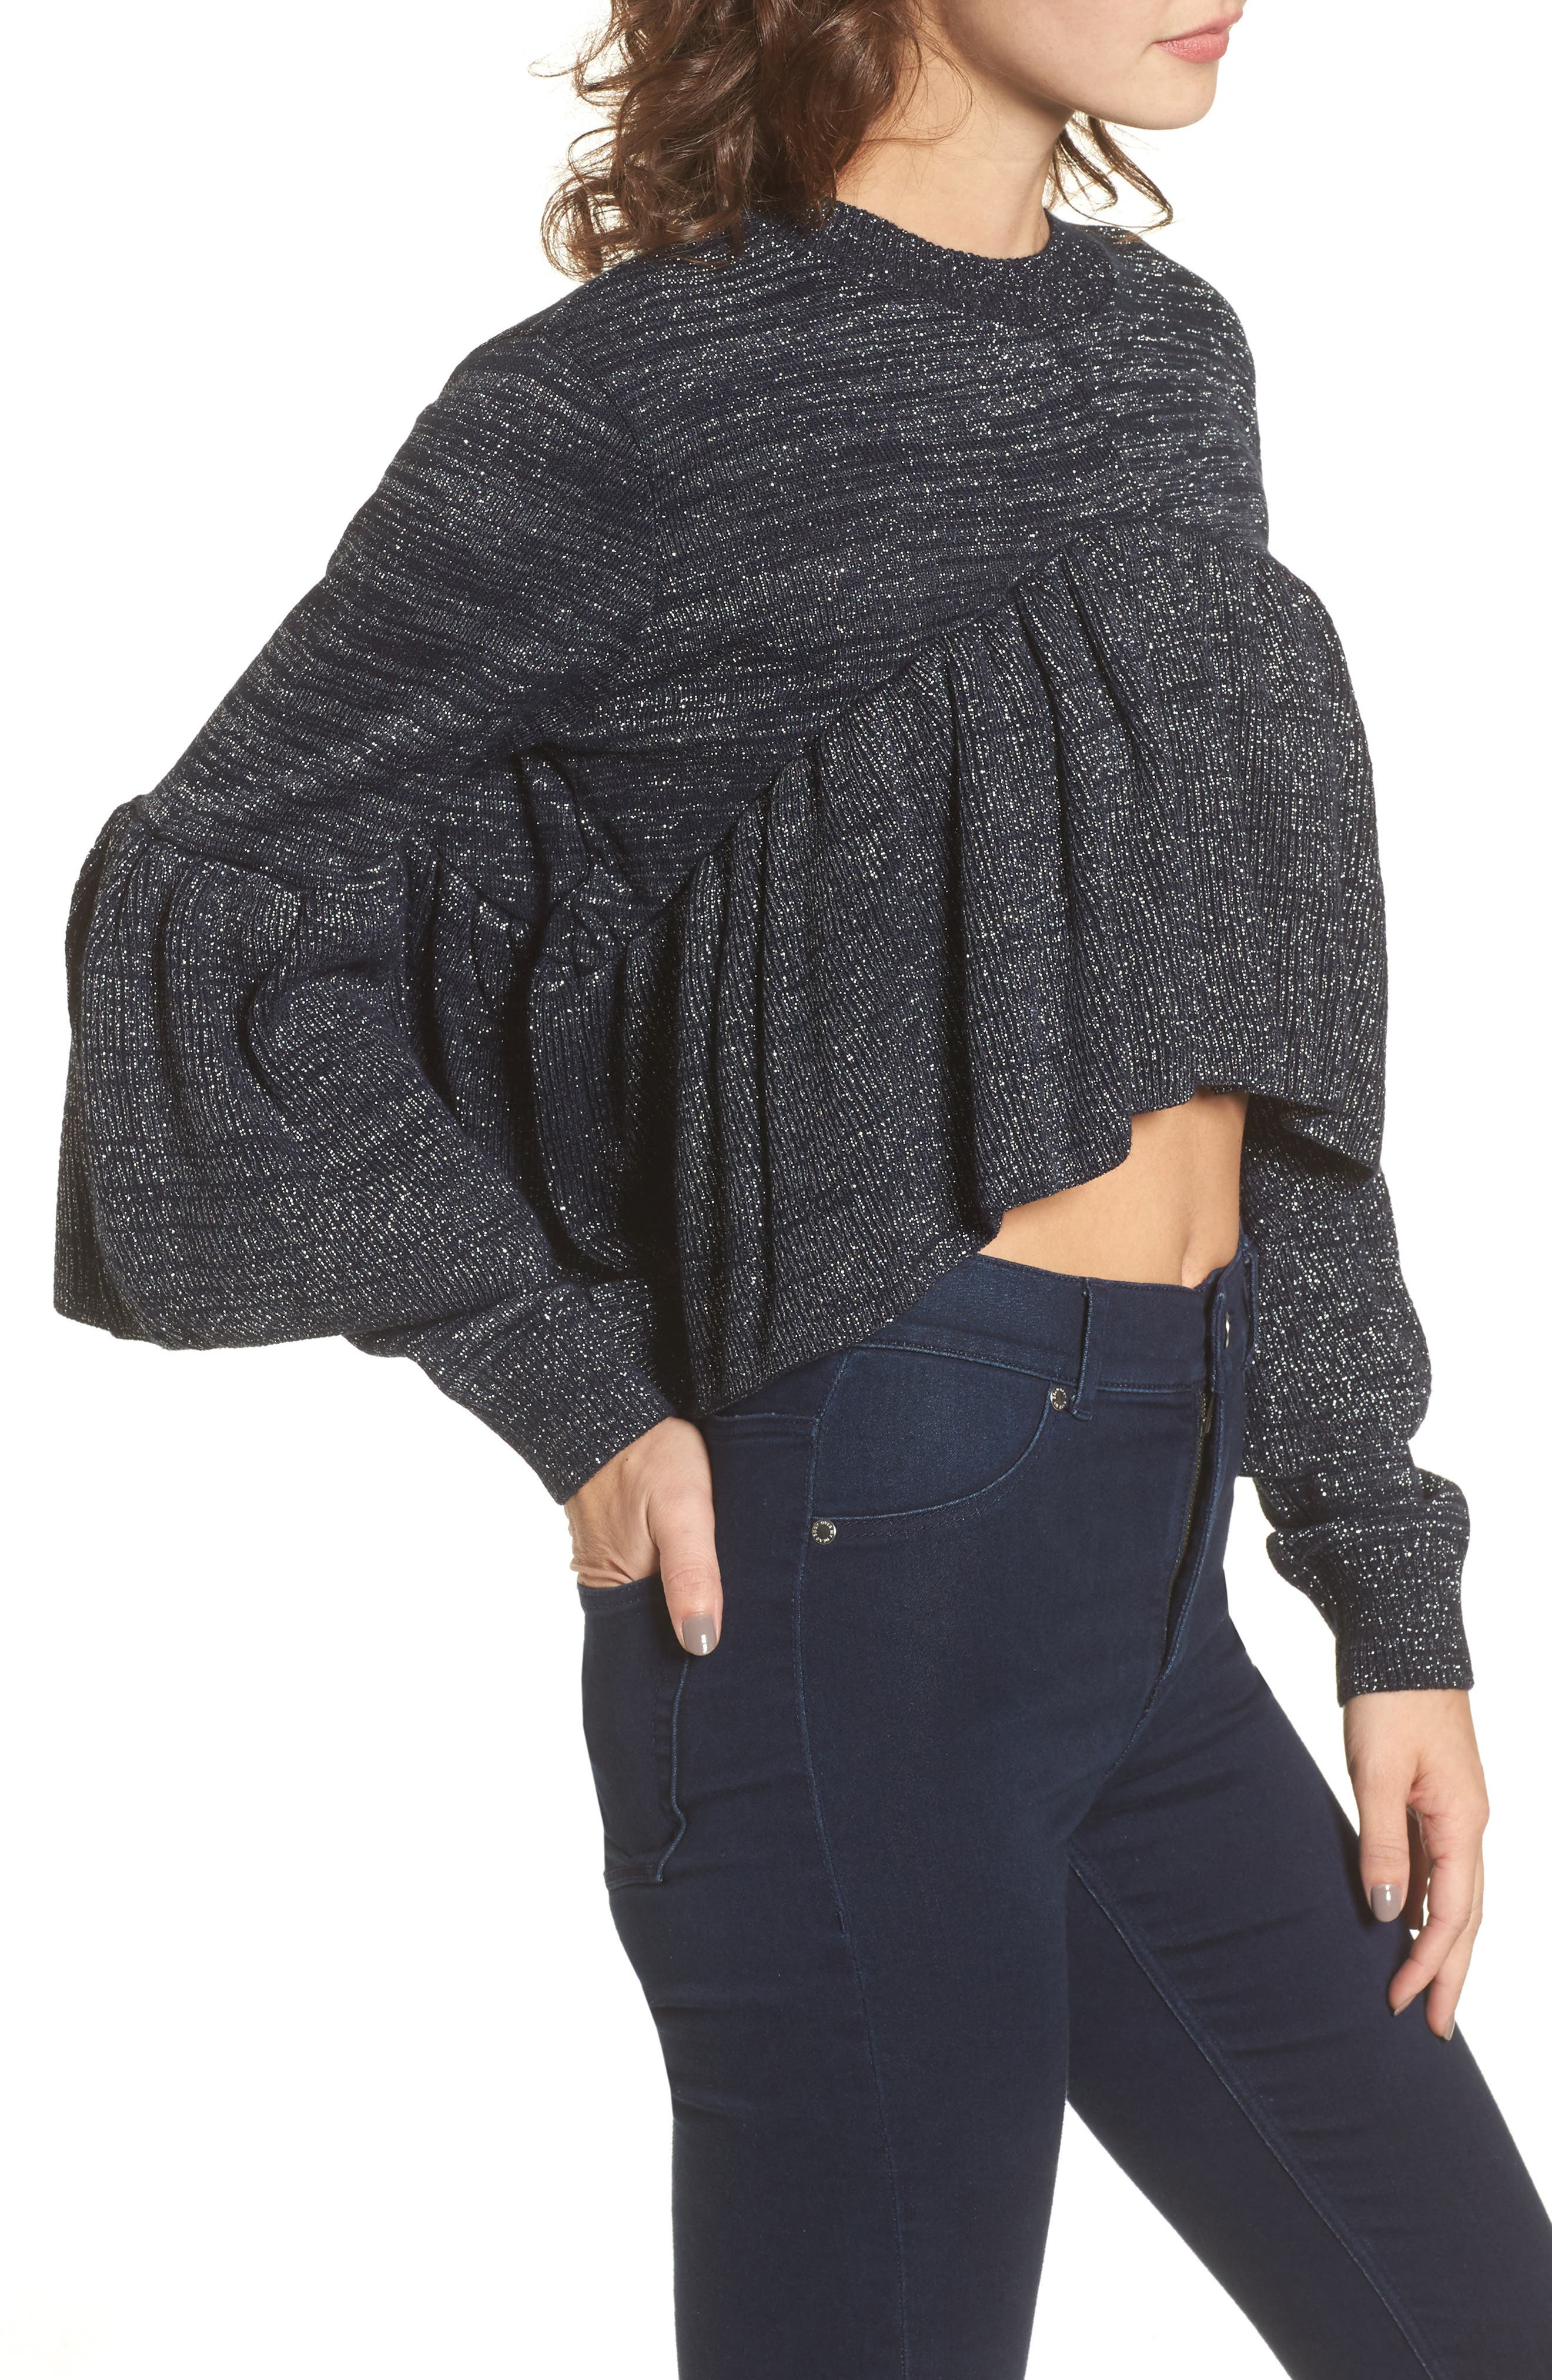 Ruffle Sweater,                             Alternate thumbnail 3, color,                             400